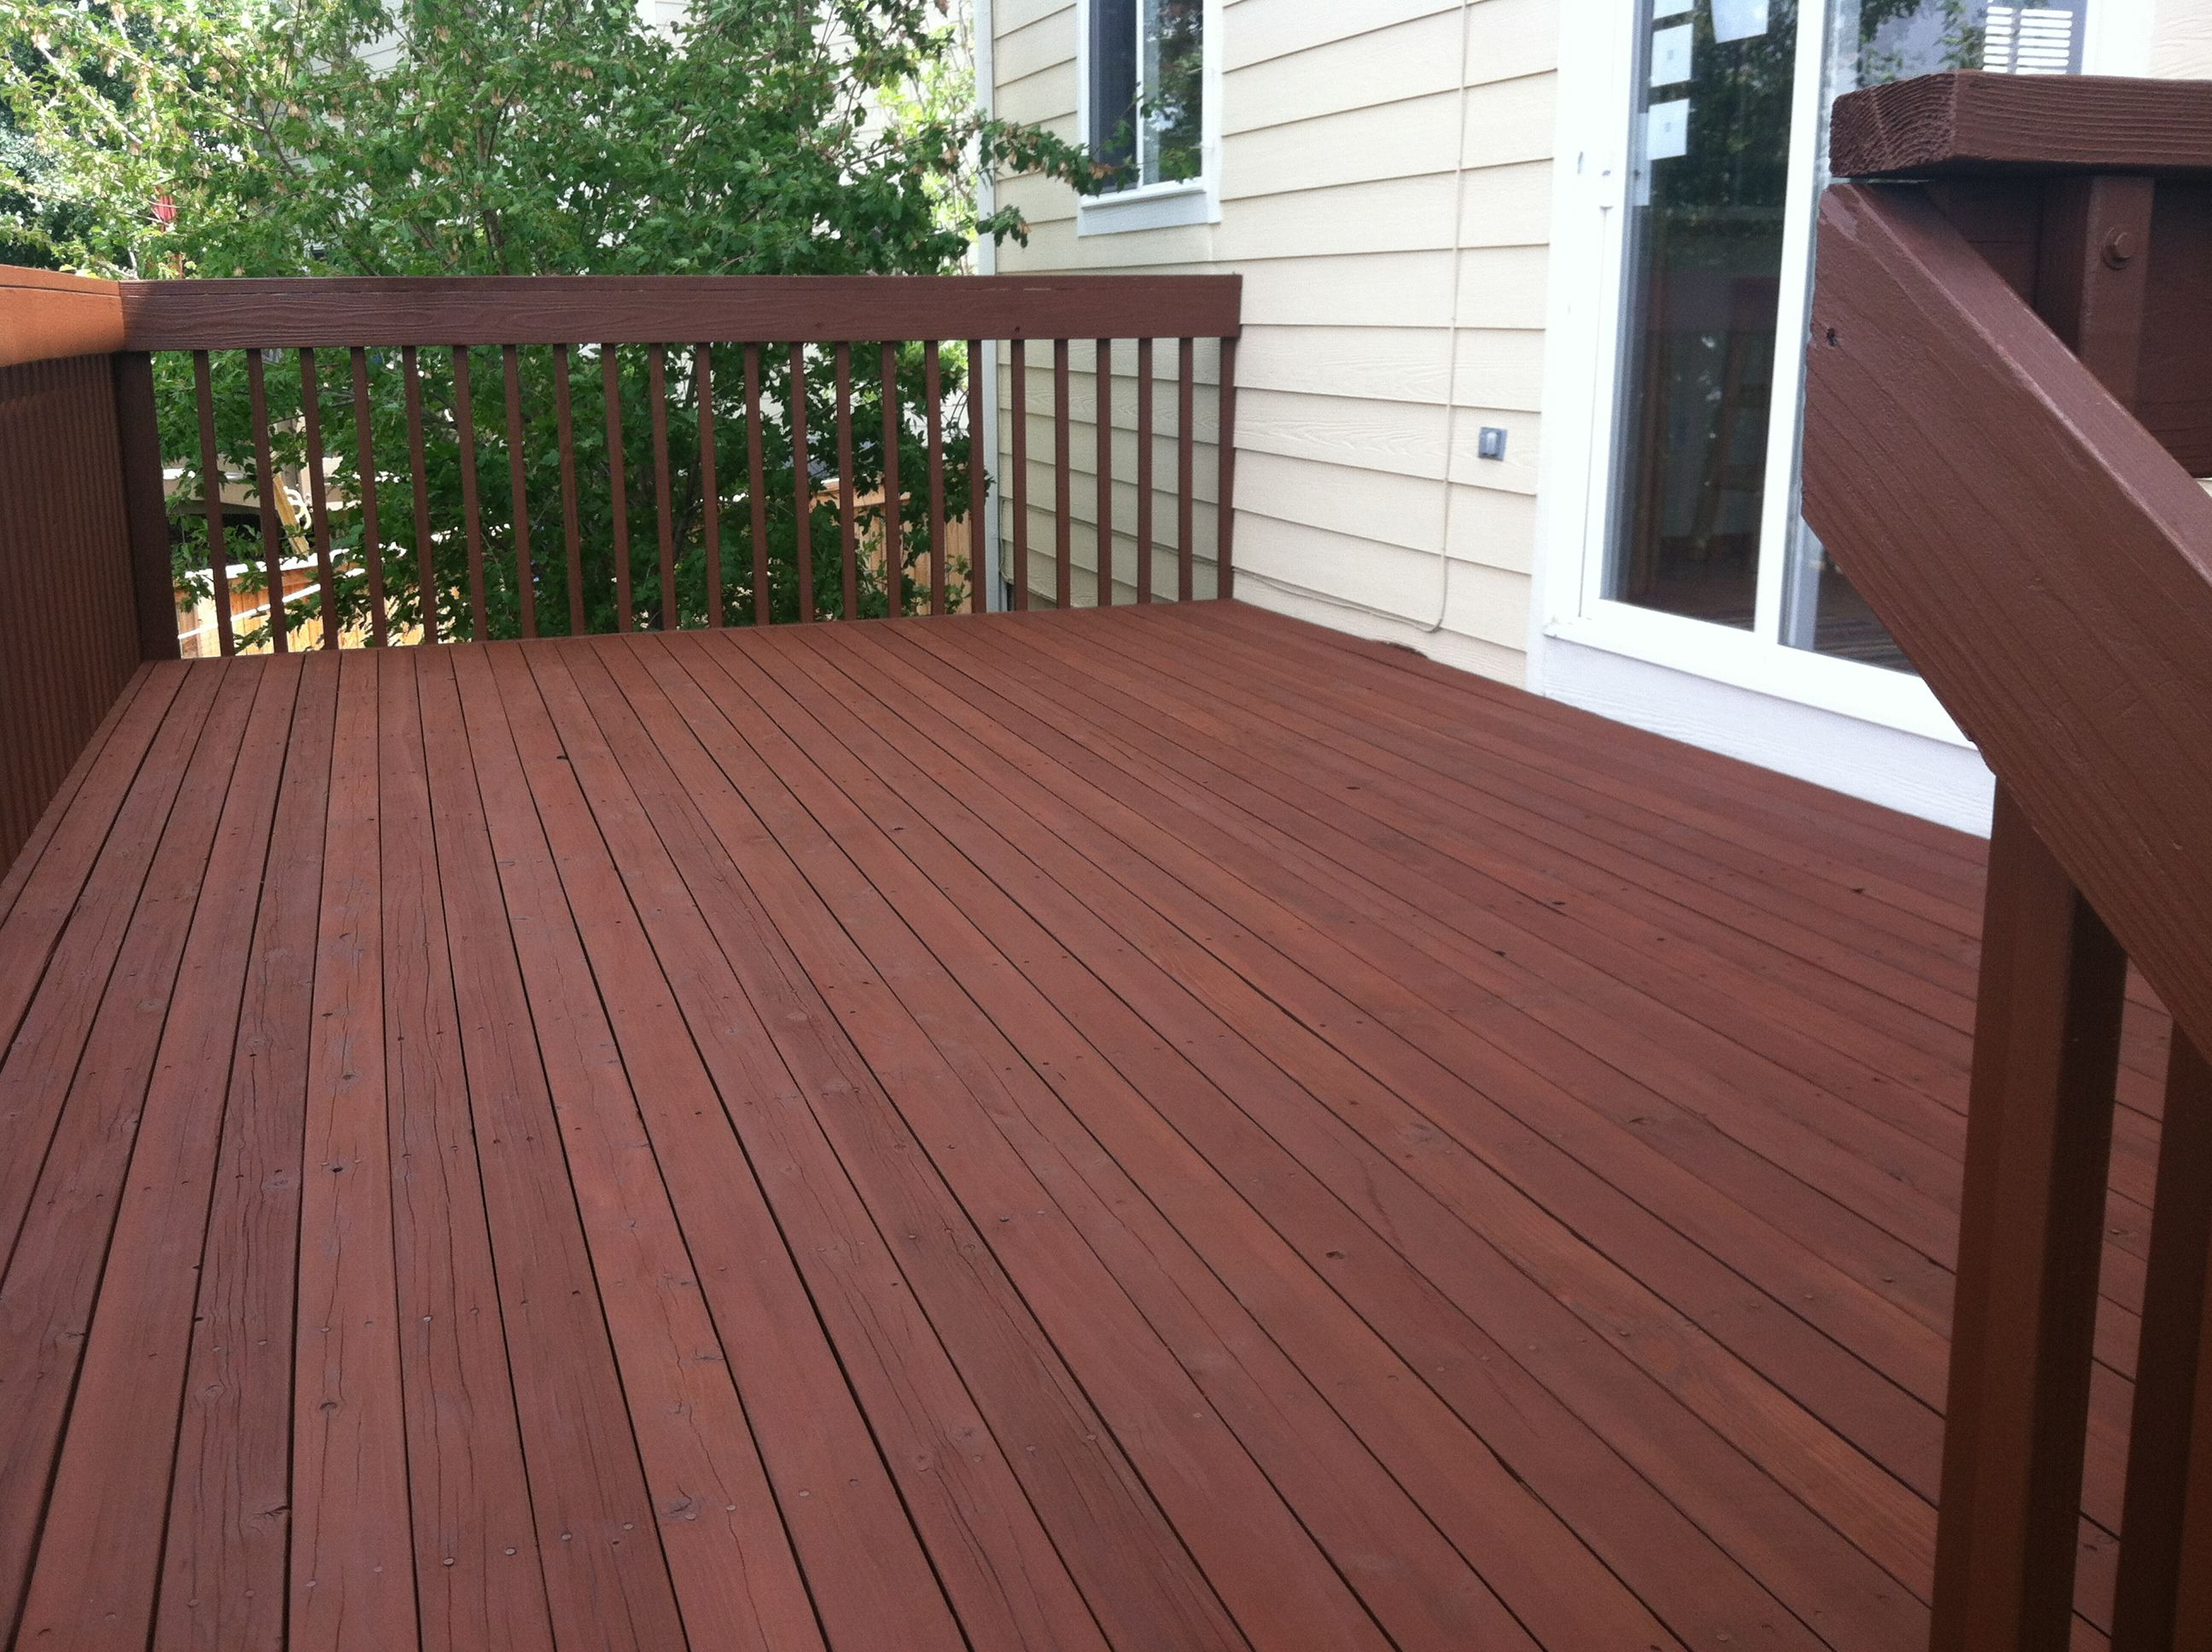 outdoor deck paint or stain. cabot deck stain in semi solid oak brown.my porch paint outdoor or